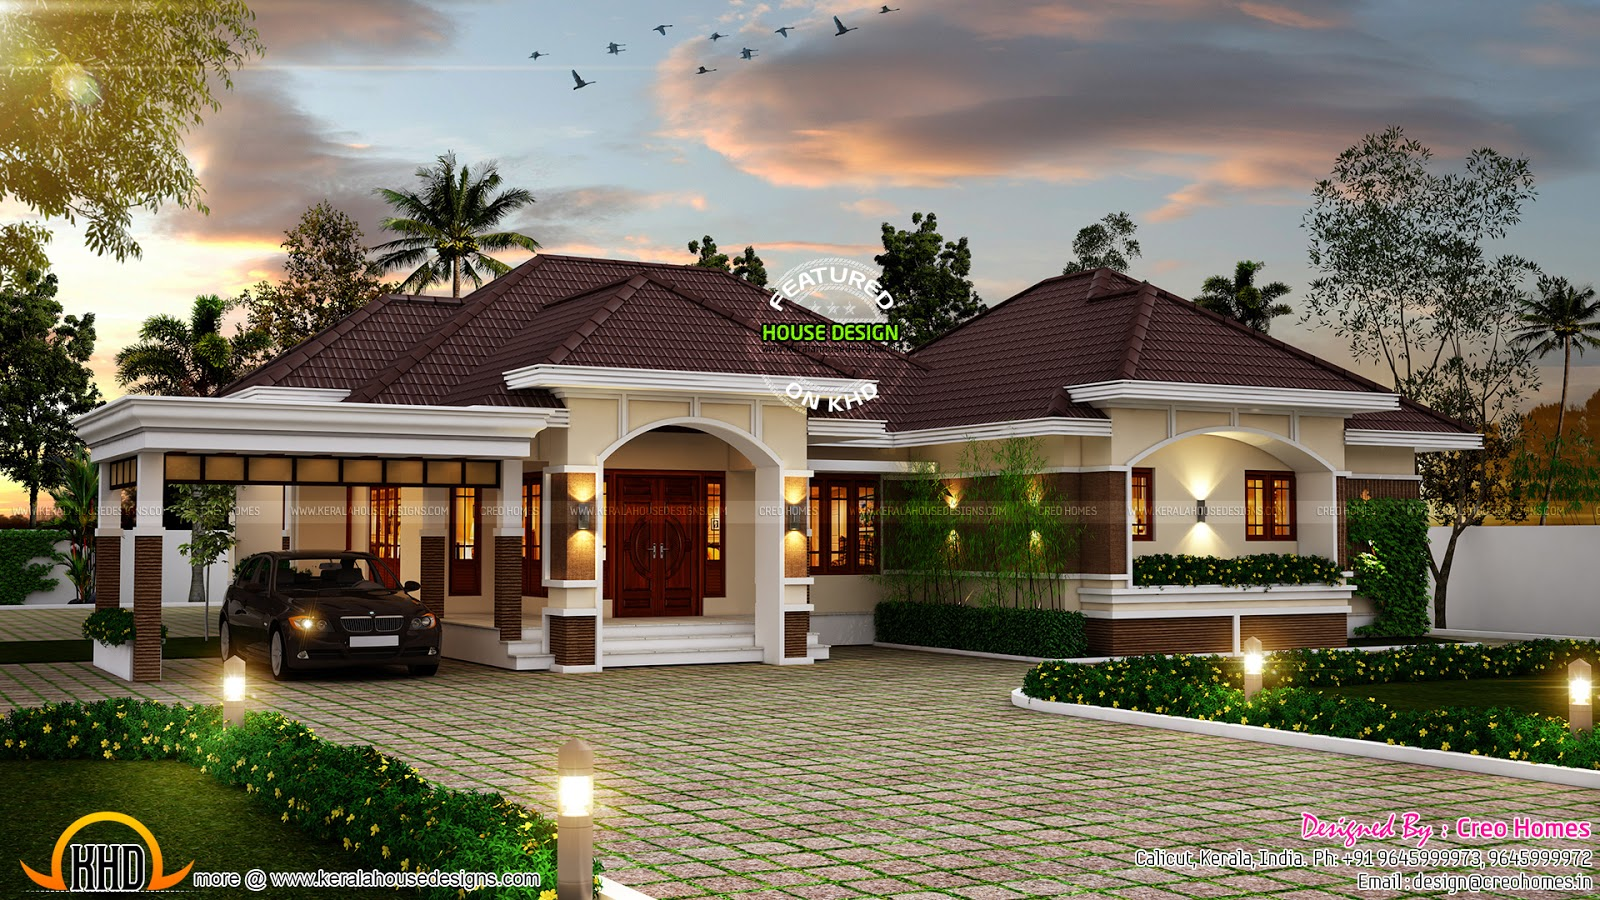 Outstanding bungalow in kerala kerala home design and for Beautiful bungalow designs